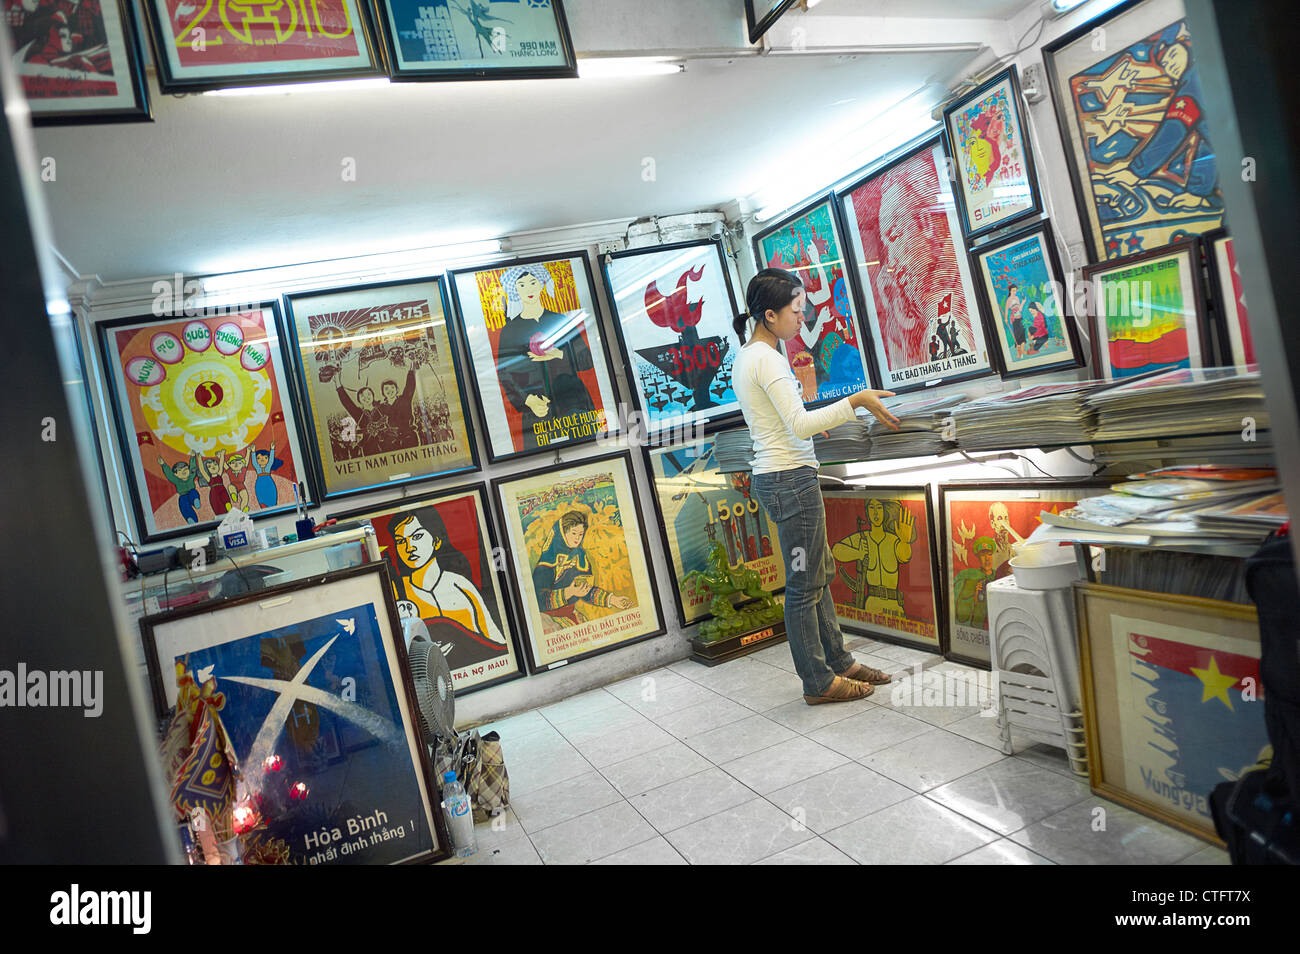 A two-story propaganda poster shop in Vietnam with people browsing through the posters. Stock Photo